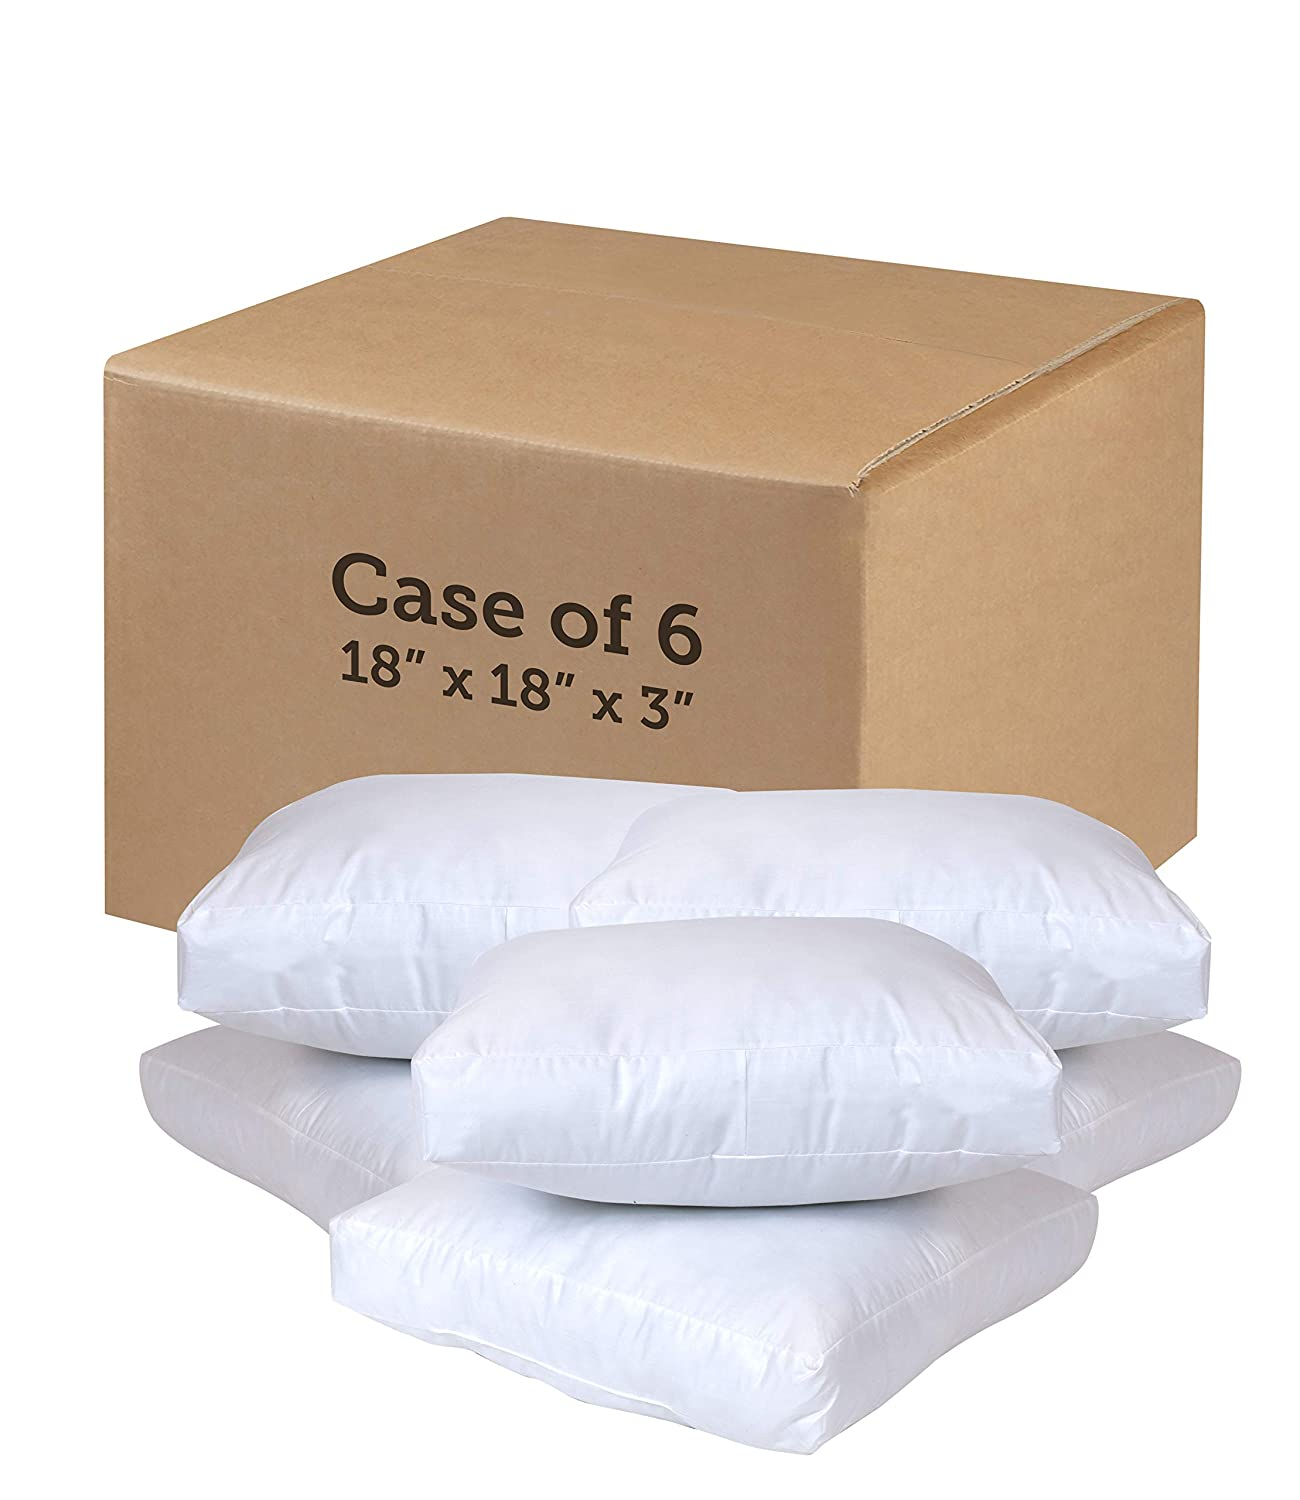 Poly-Fil A-JP183B 18' Square Seat Cushions-Case of 6, 18' x 18', White 6 Count 18 x 18 Fairfield Processing